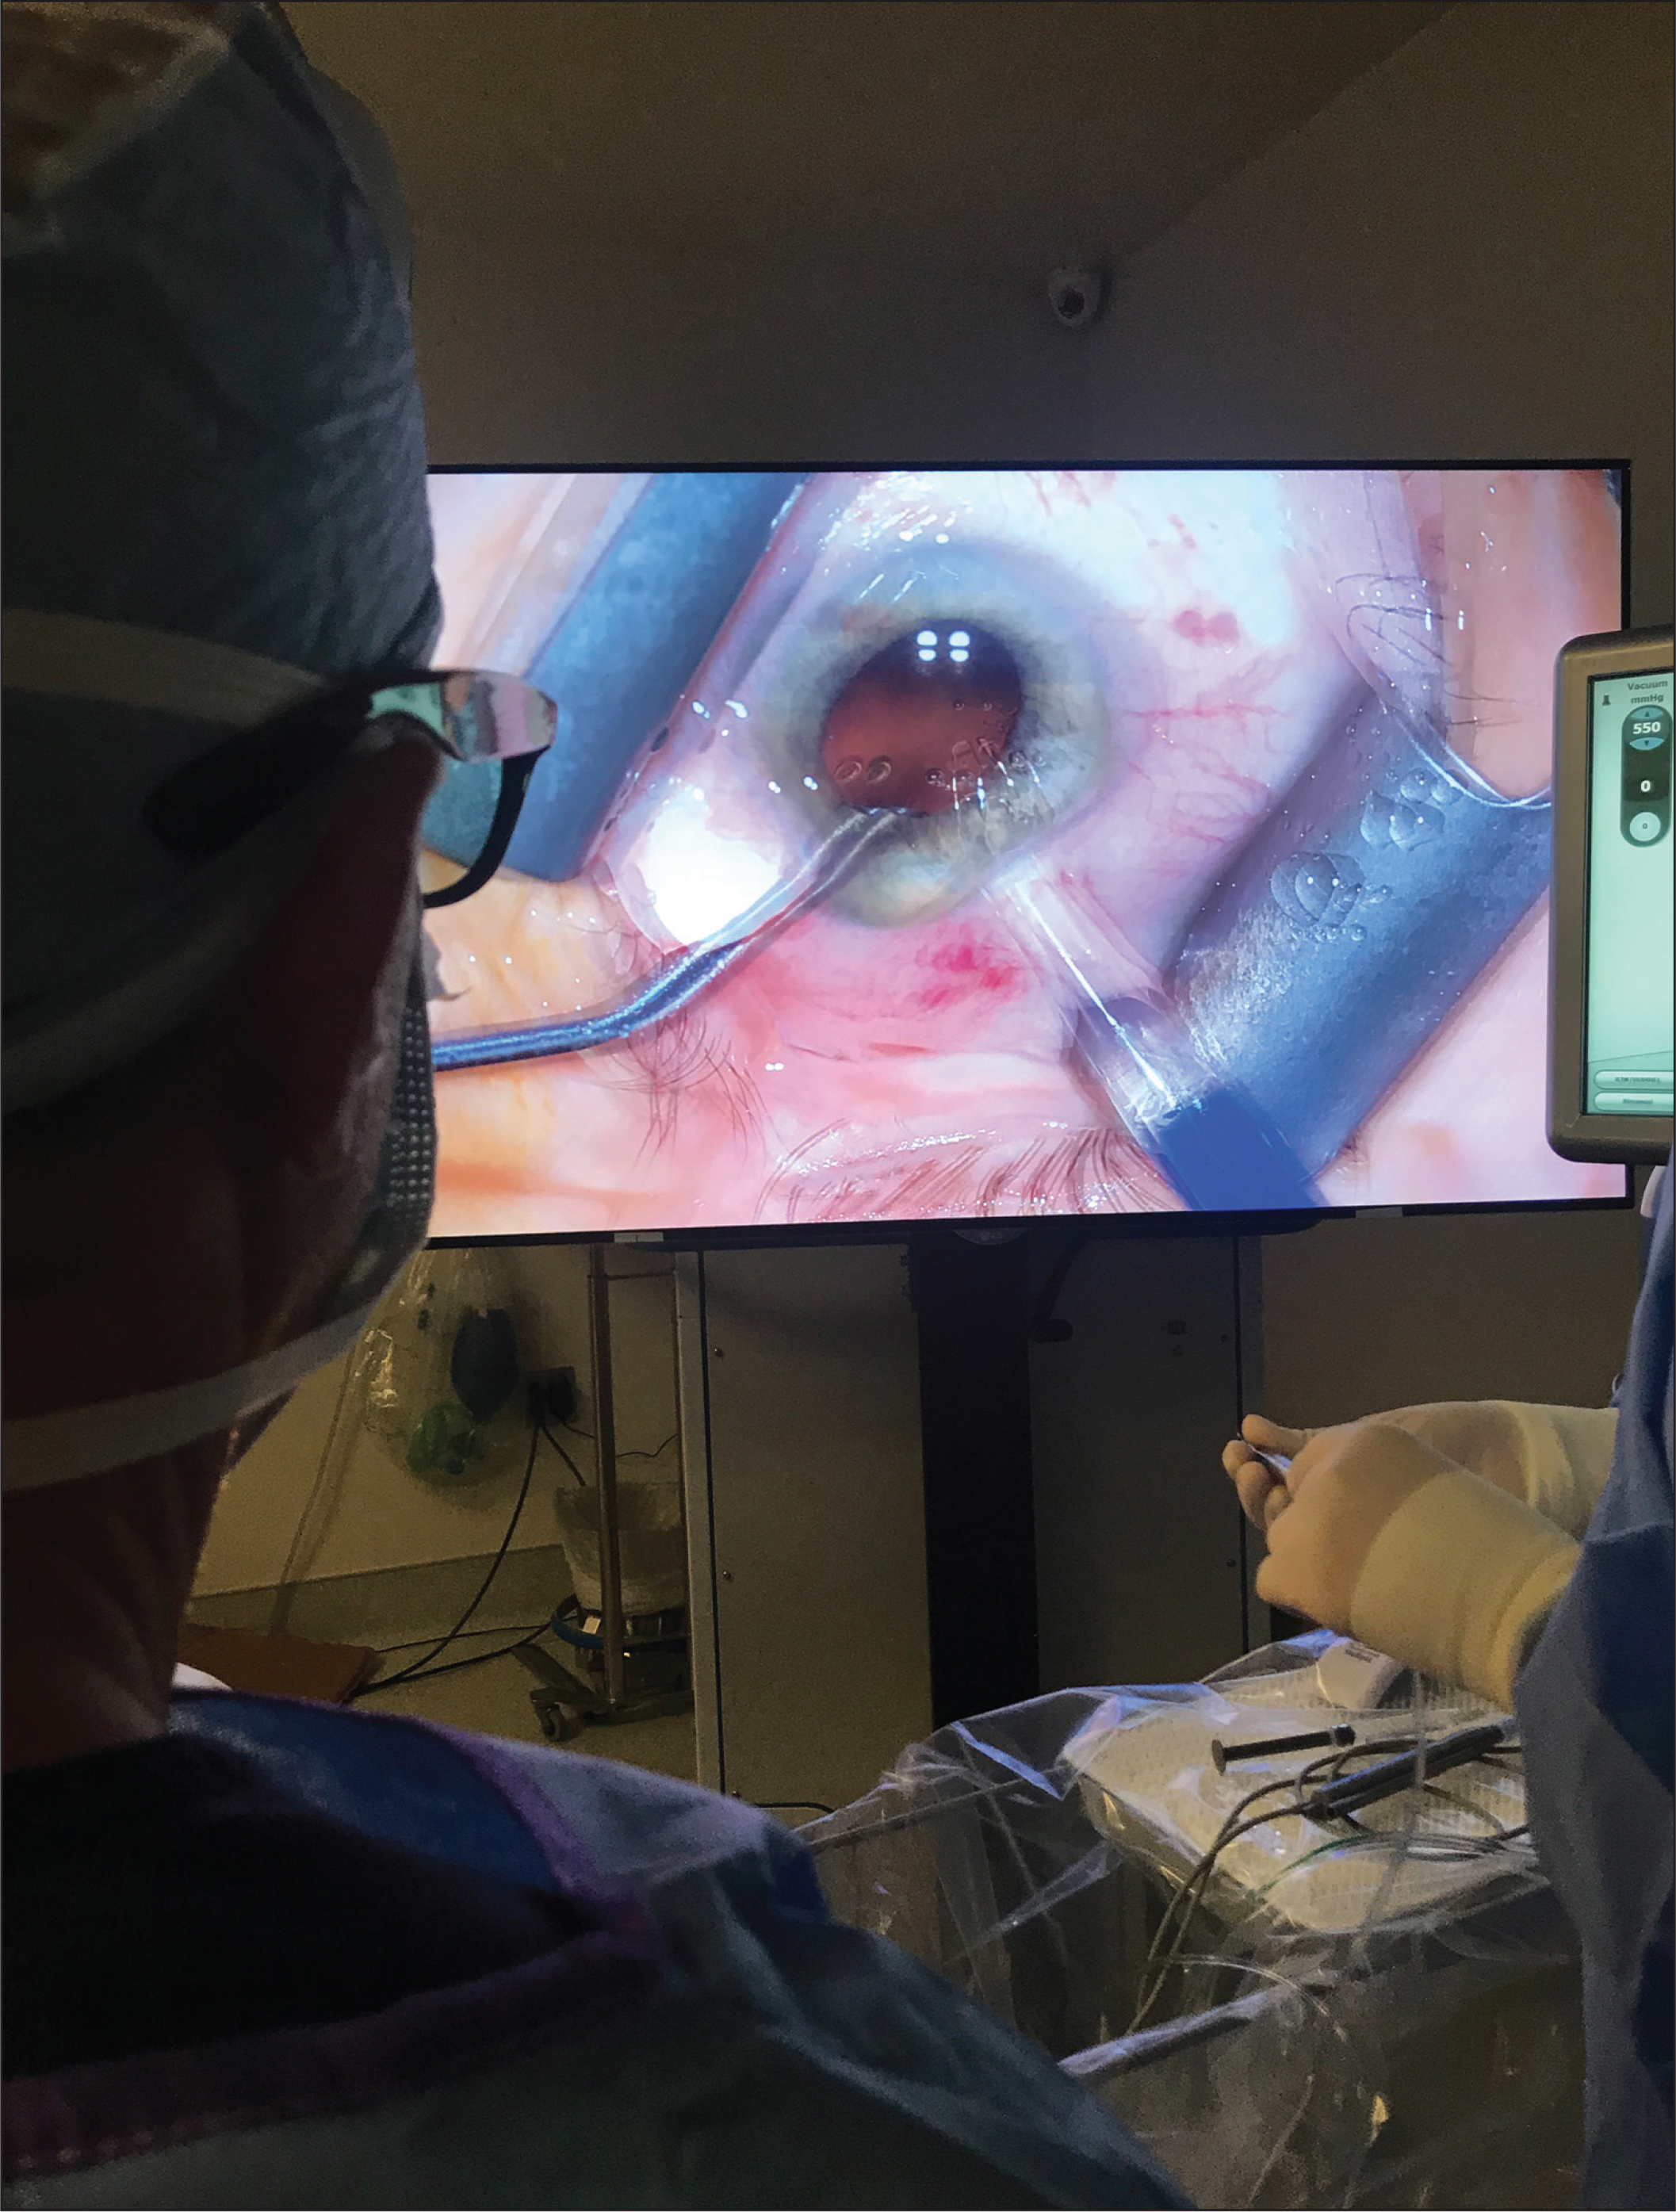 Image showing a surgeon using a three-dimensional visualization system during cataract surgery. The high definition three-dimensional screen, being 3 to 5 feet away from the surgeon, has the ability to magnify the image to a high magnification and offer the surgeon a natural body posture when operating.